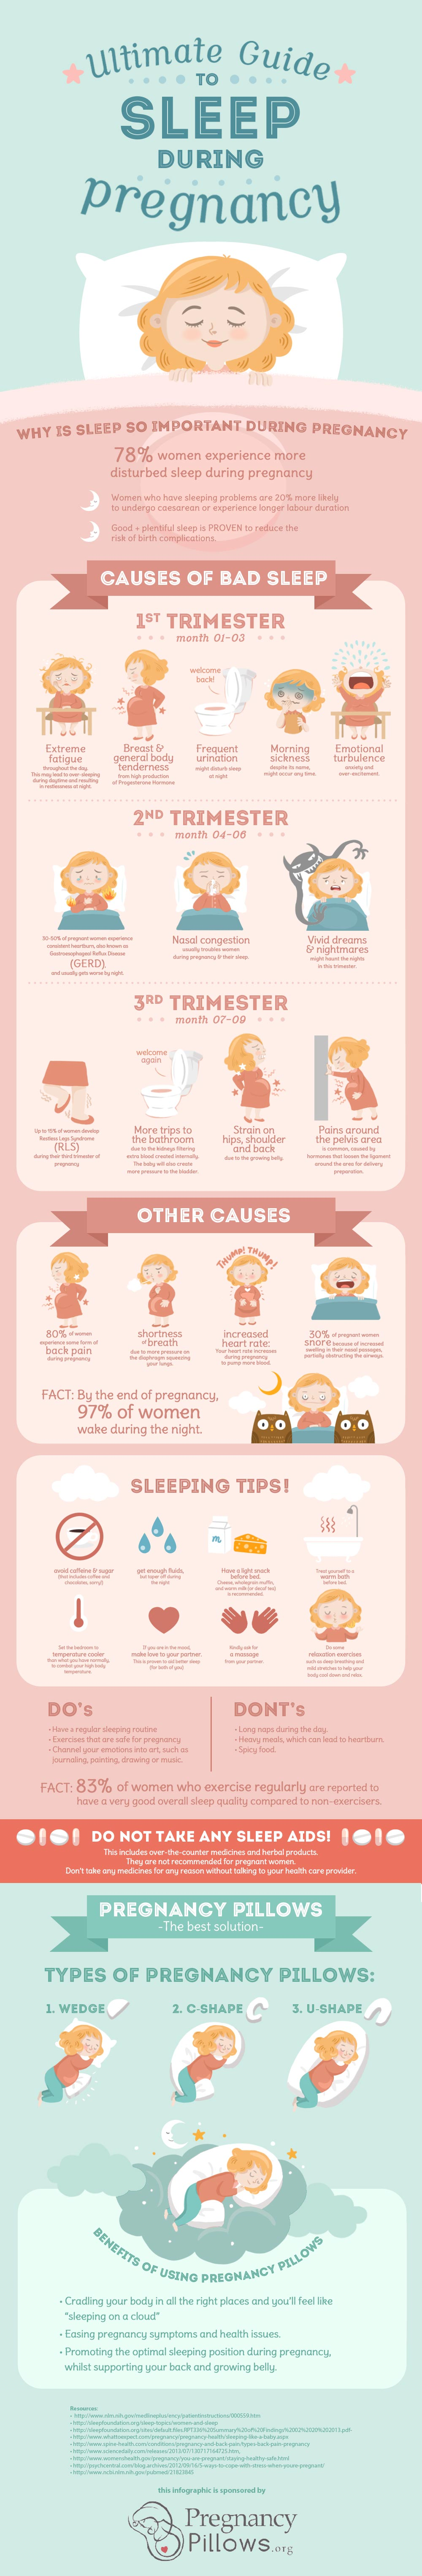 pregnancy pillow infographic - The best sleeping aid for pregnant women